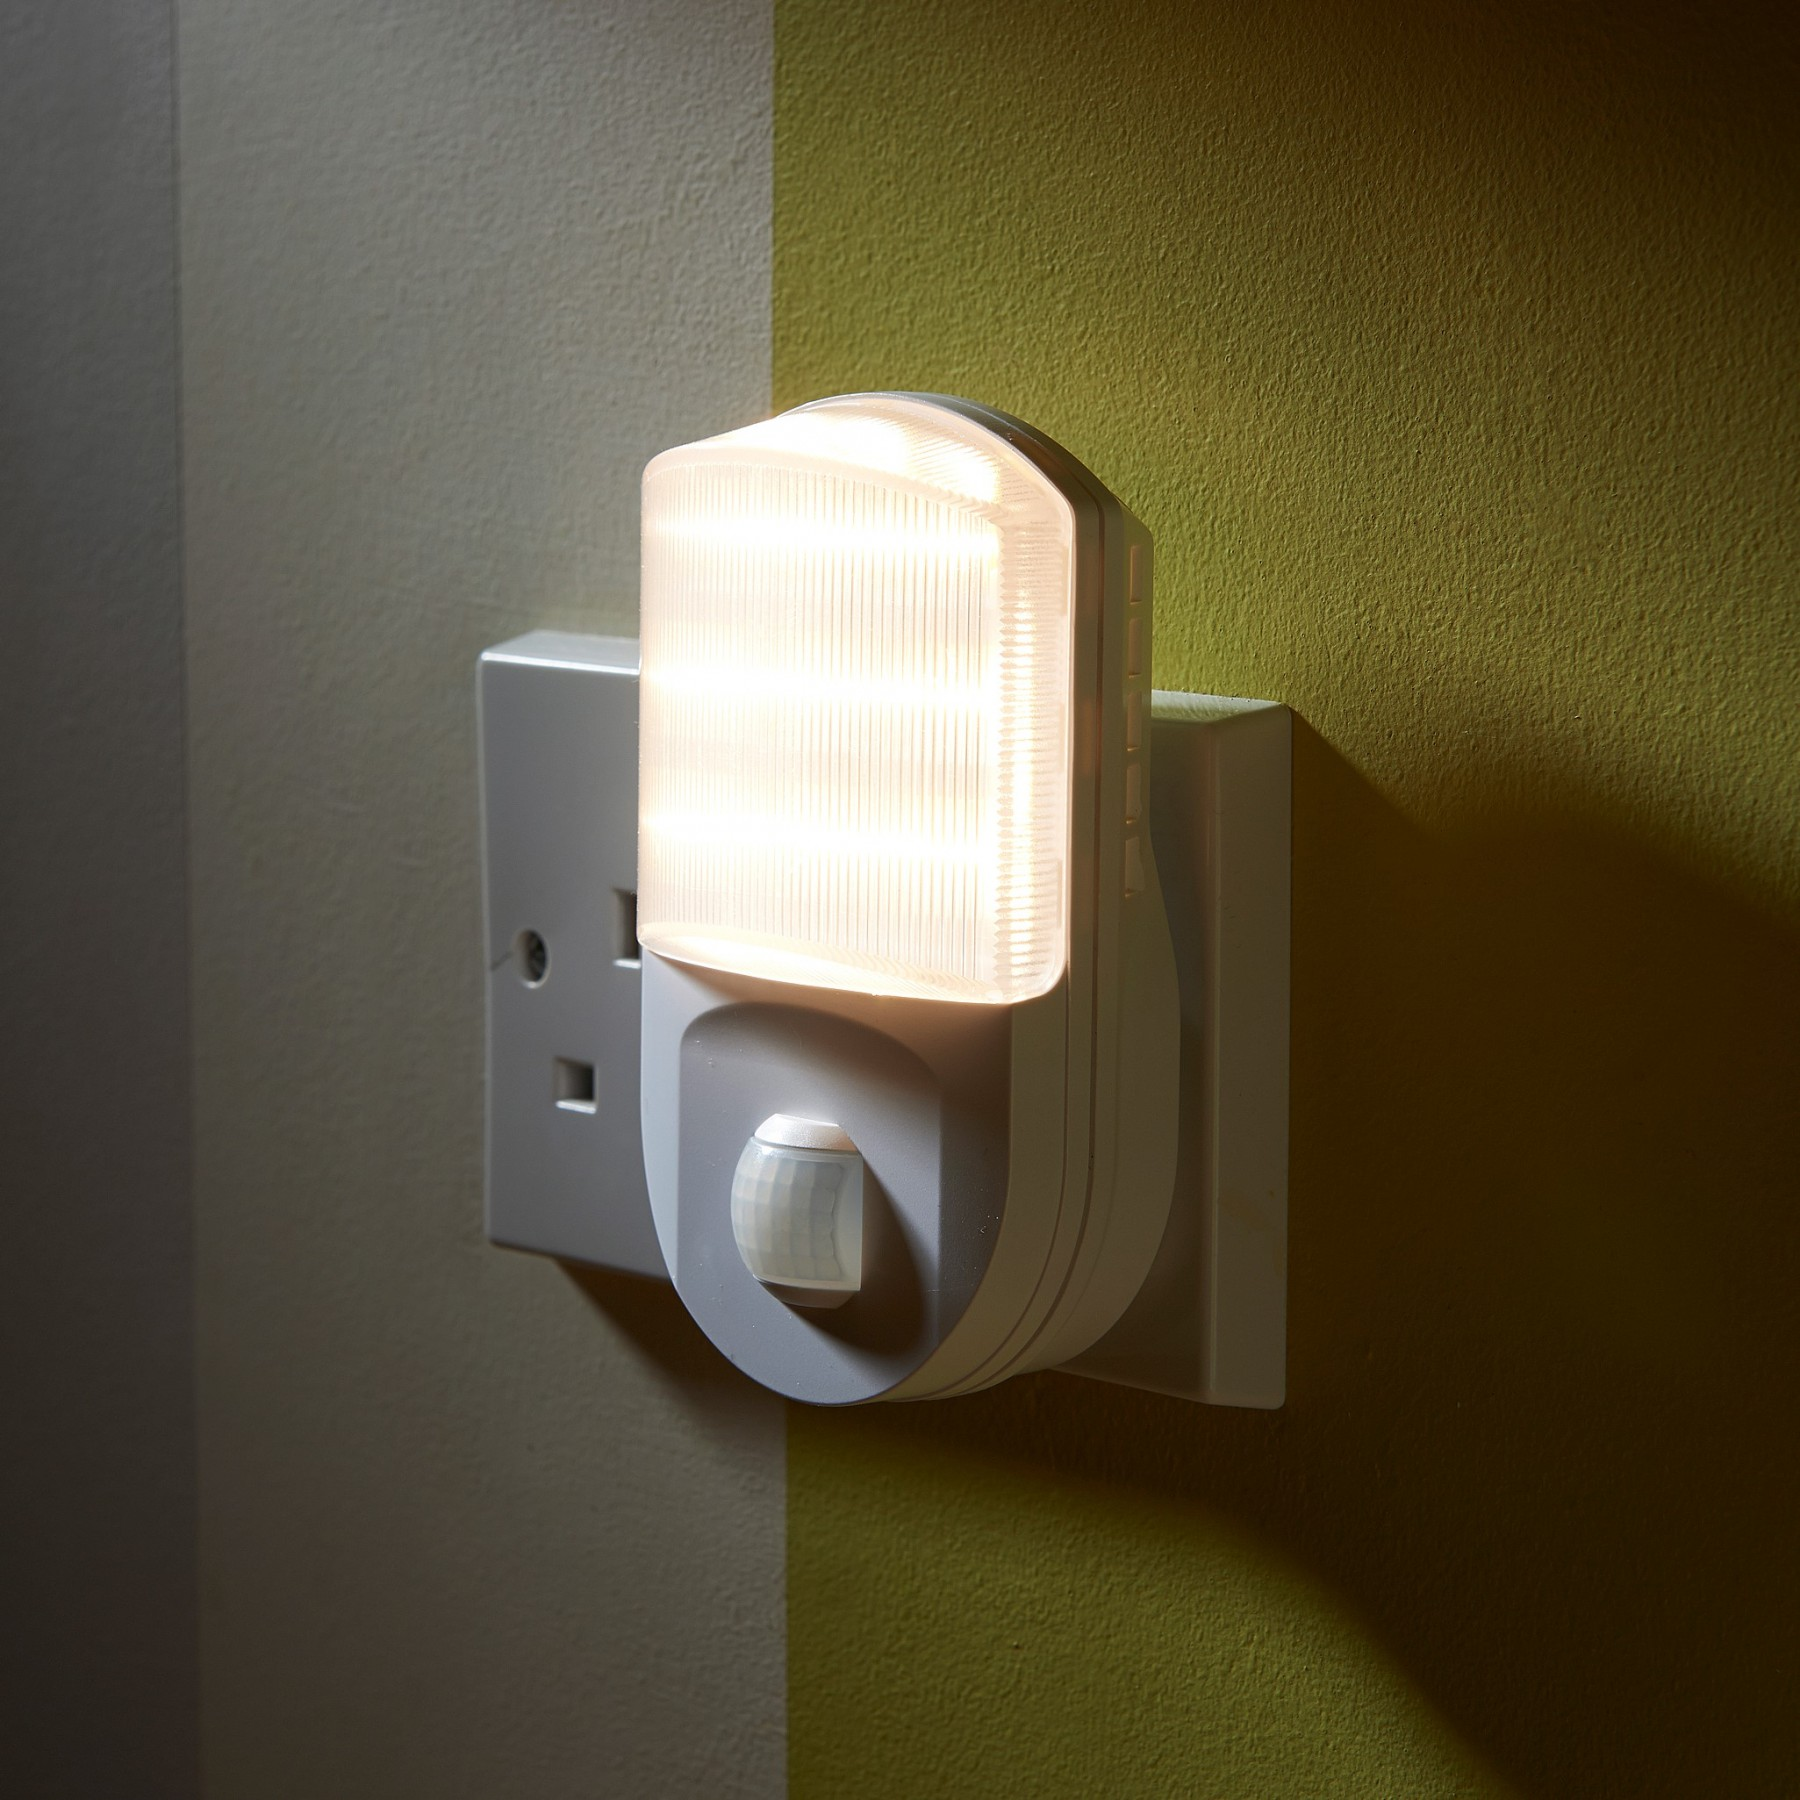 Super bright plug in pir motion sensor led night light for Night light design